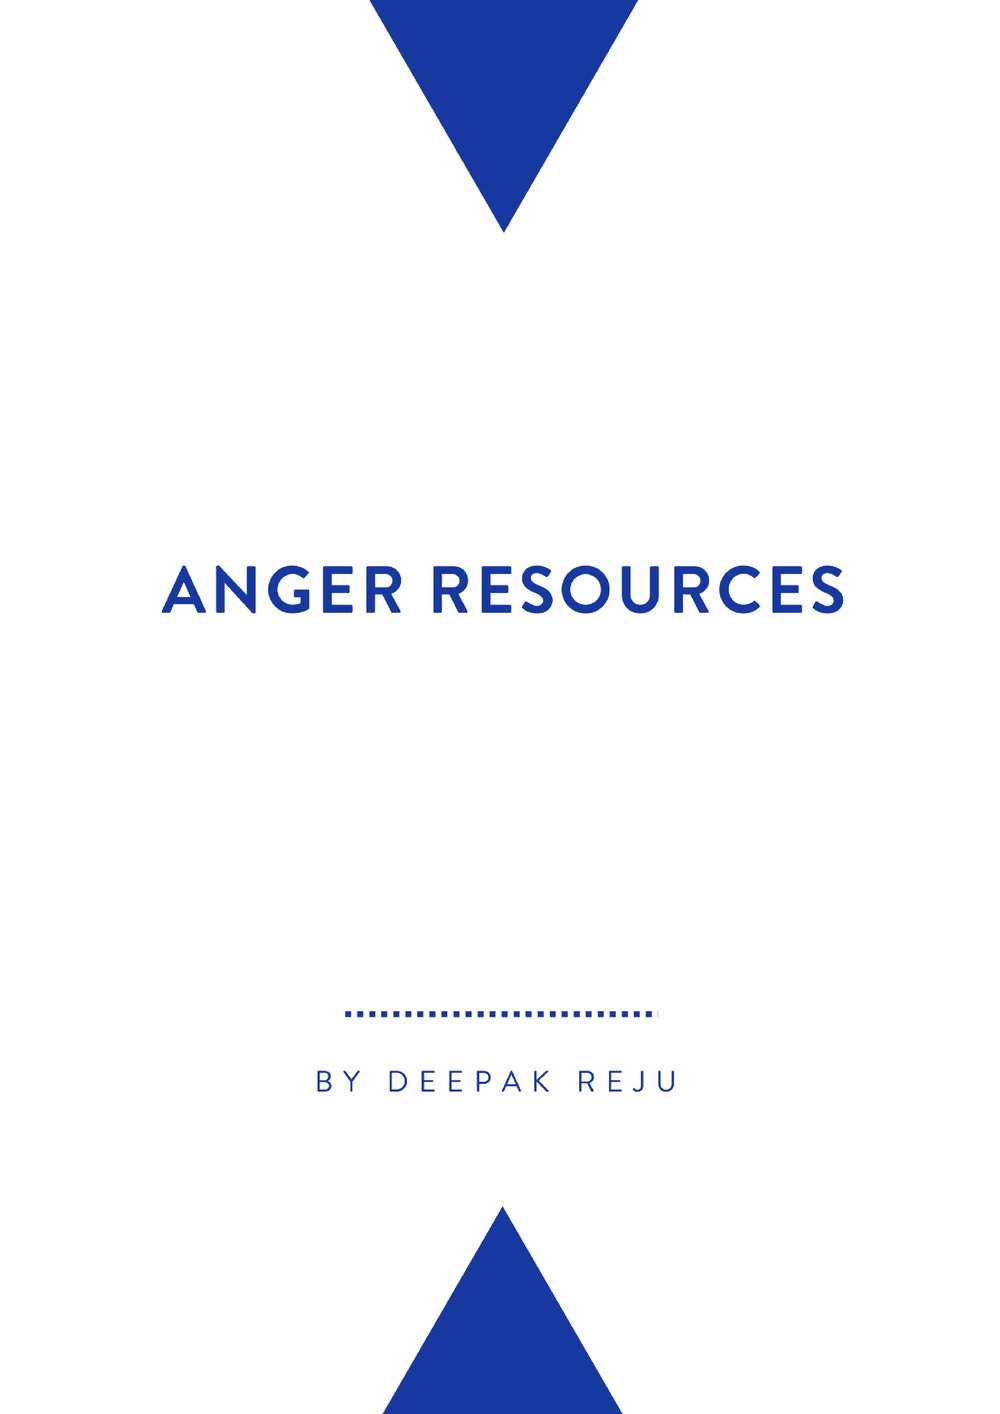 Anger Resources   By Deepak Reju